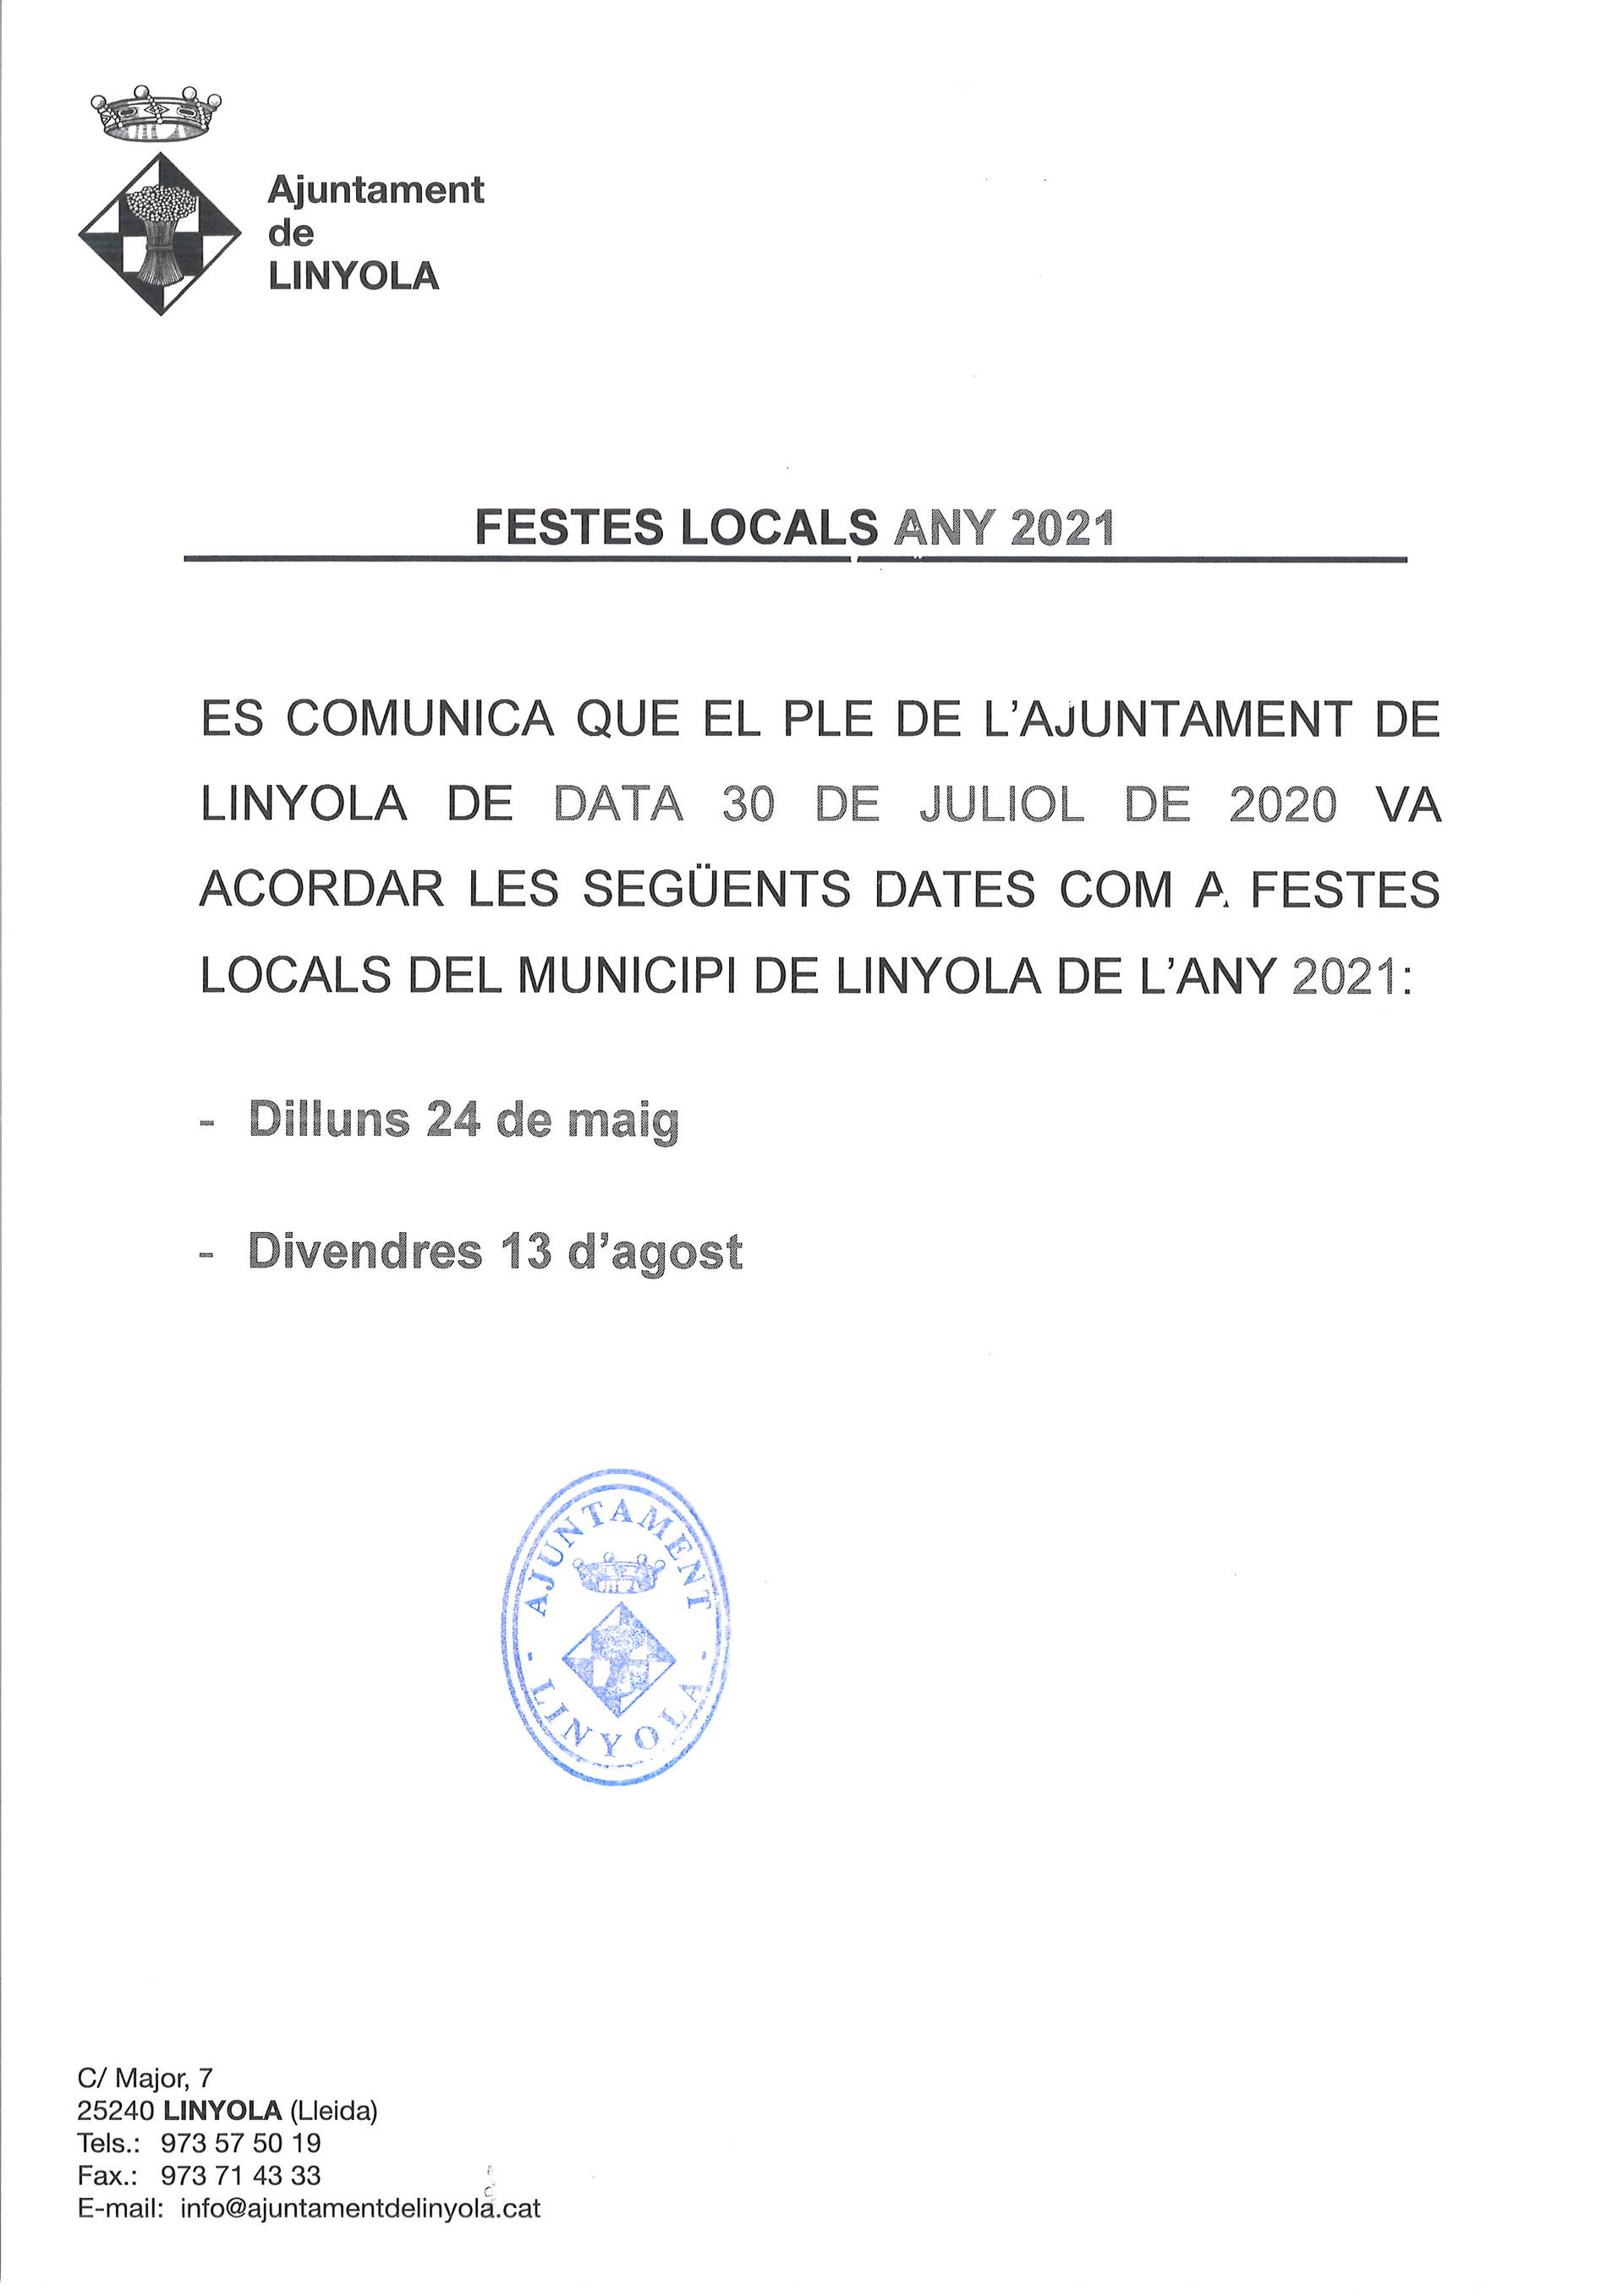 Festes Locals Any 2021